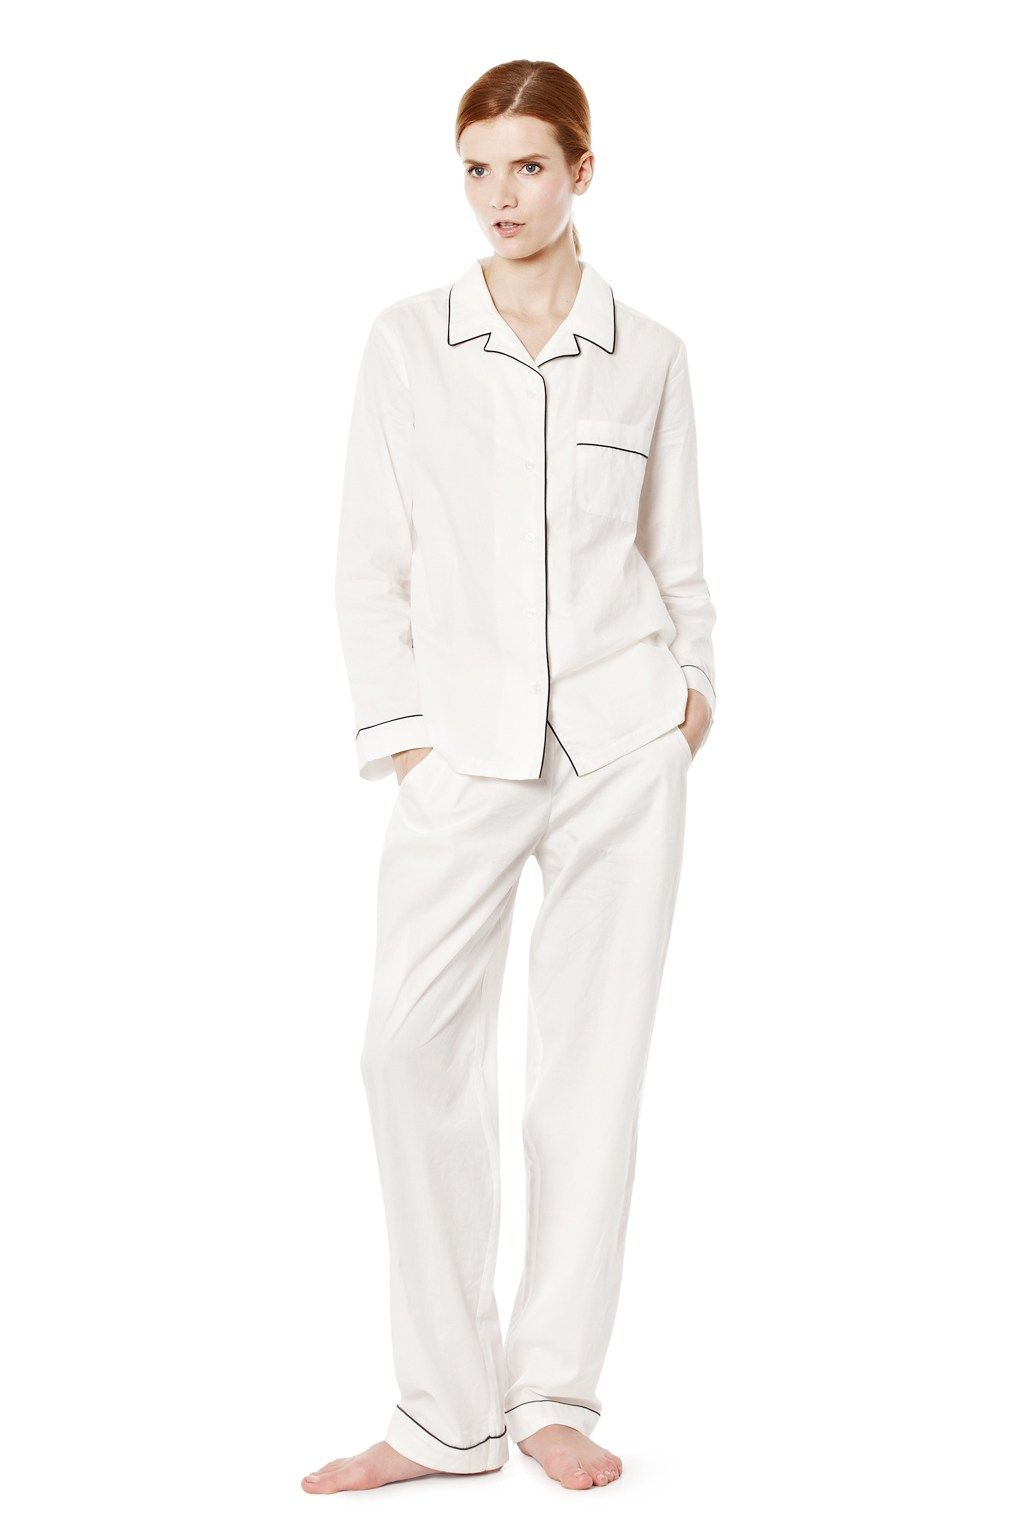 436aadd5cd White Cotton Pyjamas Set - Nightwear - French Connection